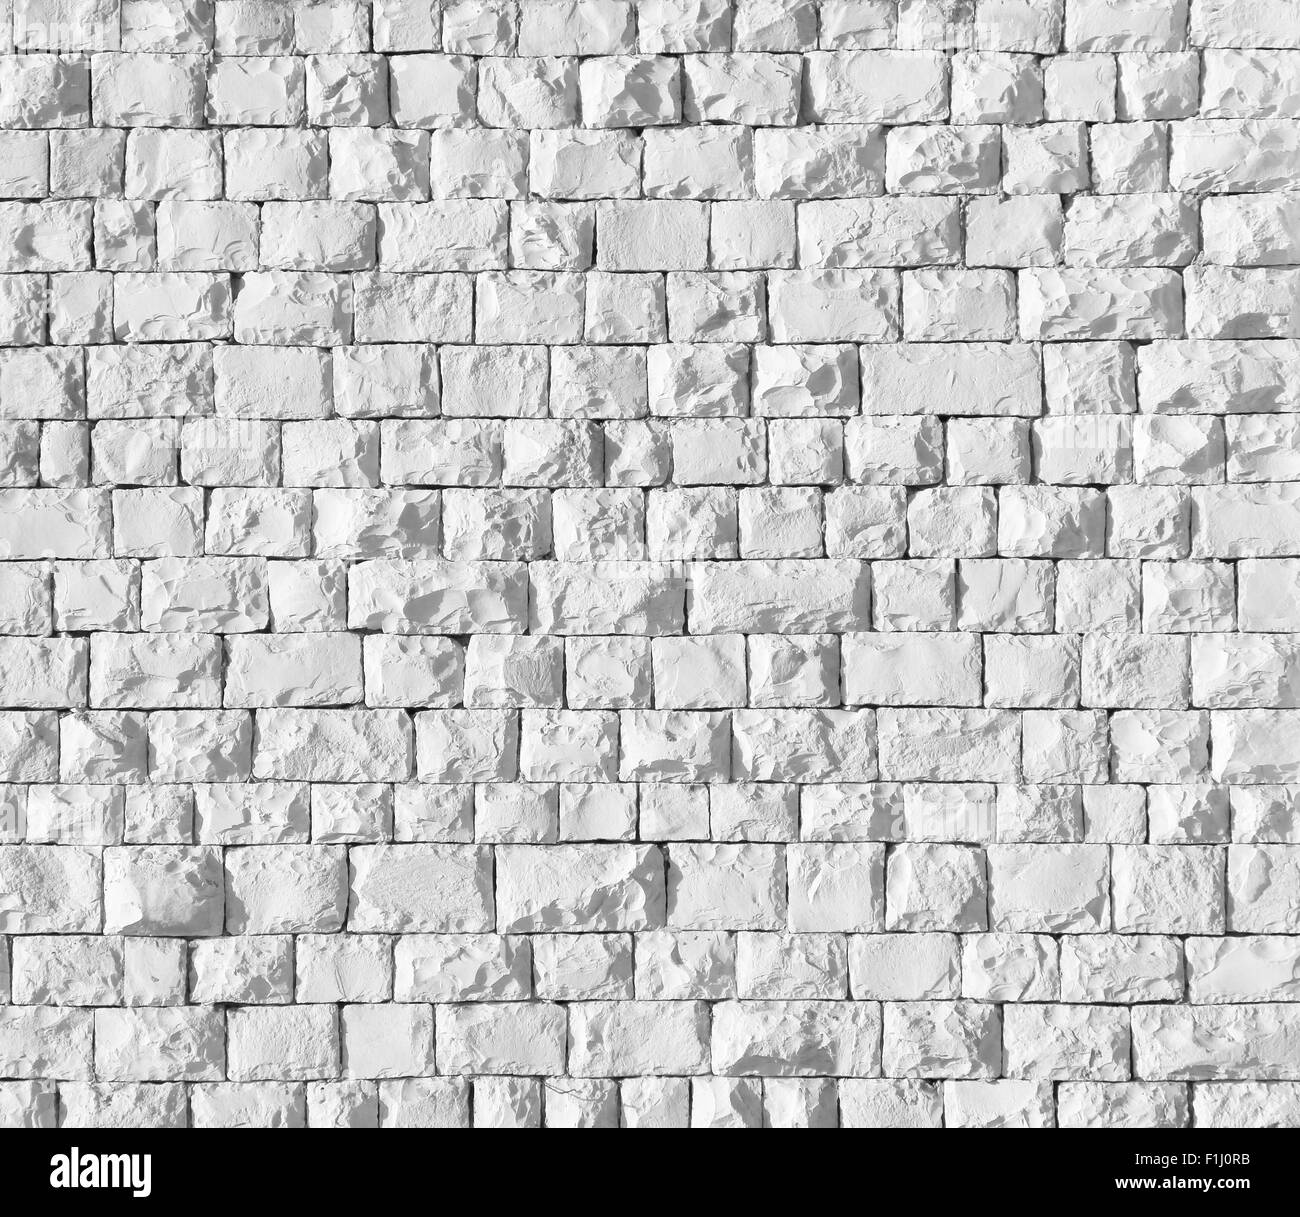 Background of white stone wall texture - Stock Image